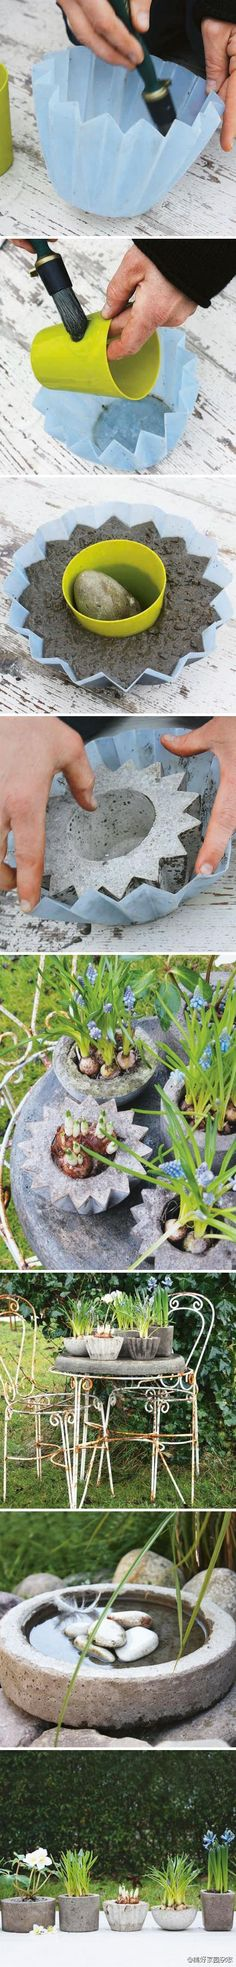 diy cement flower pot